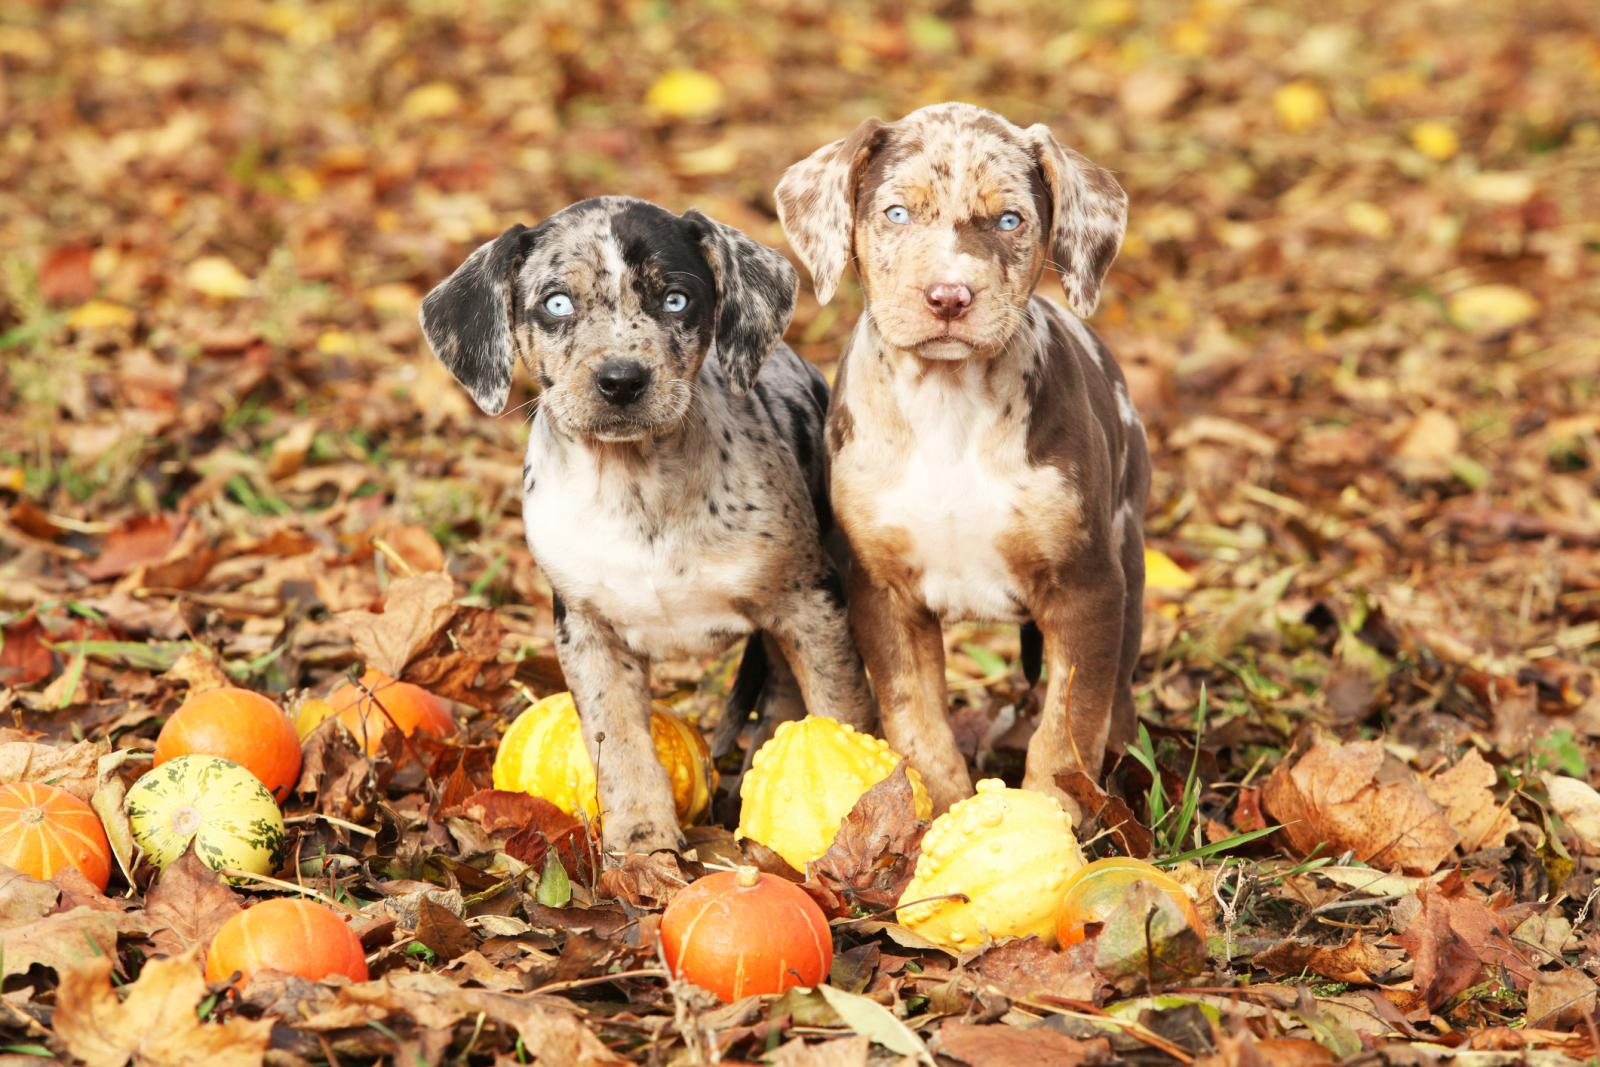 Catahoula Puppies | LoveToKnow